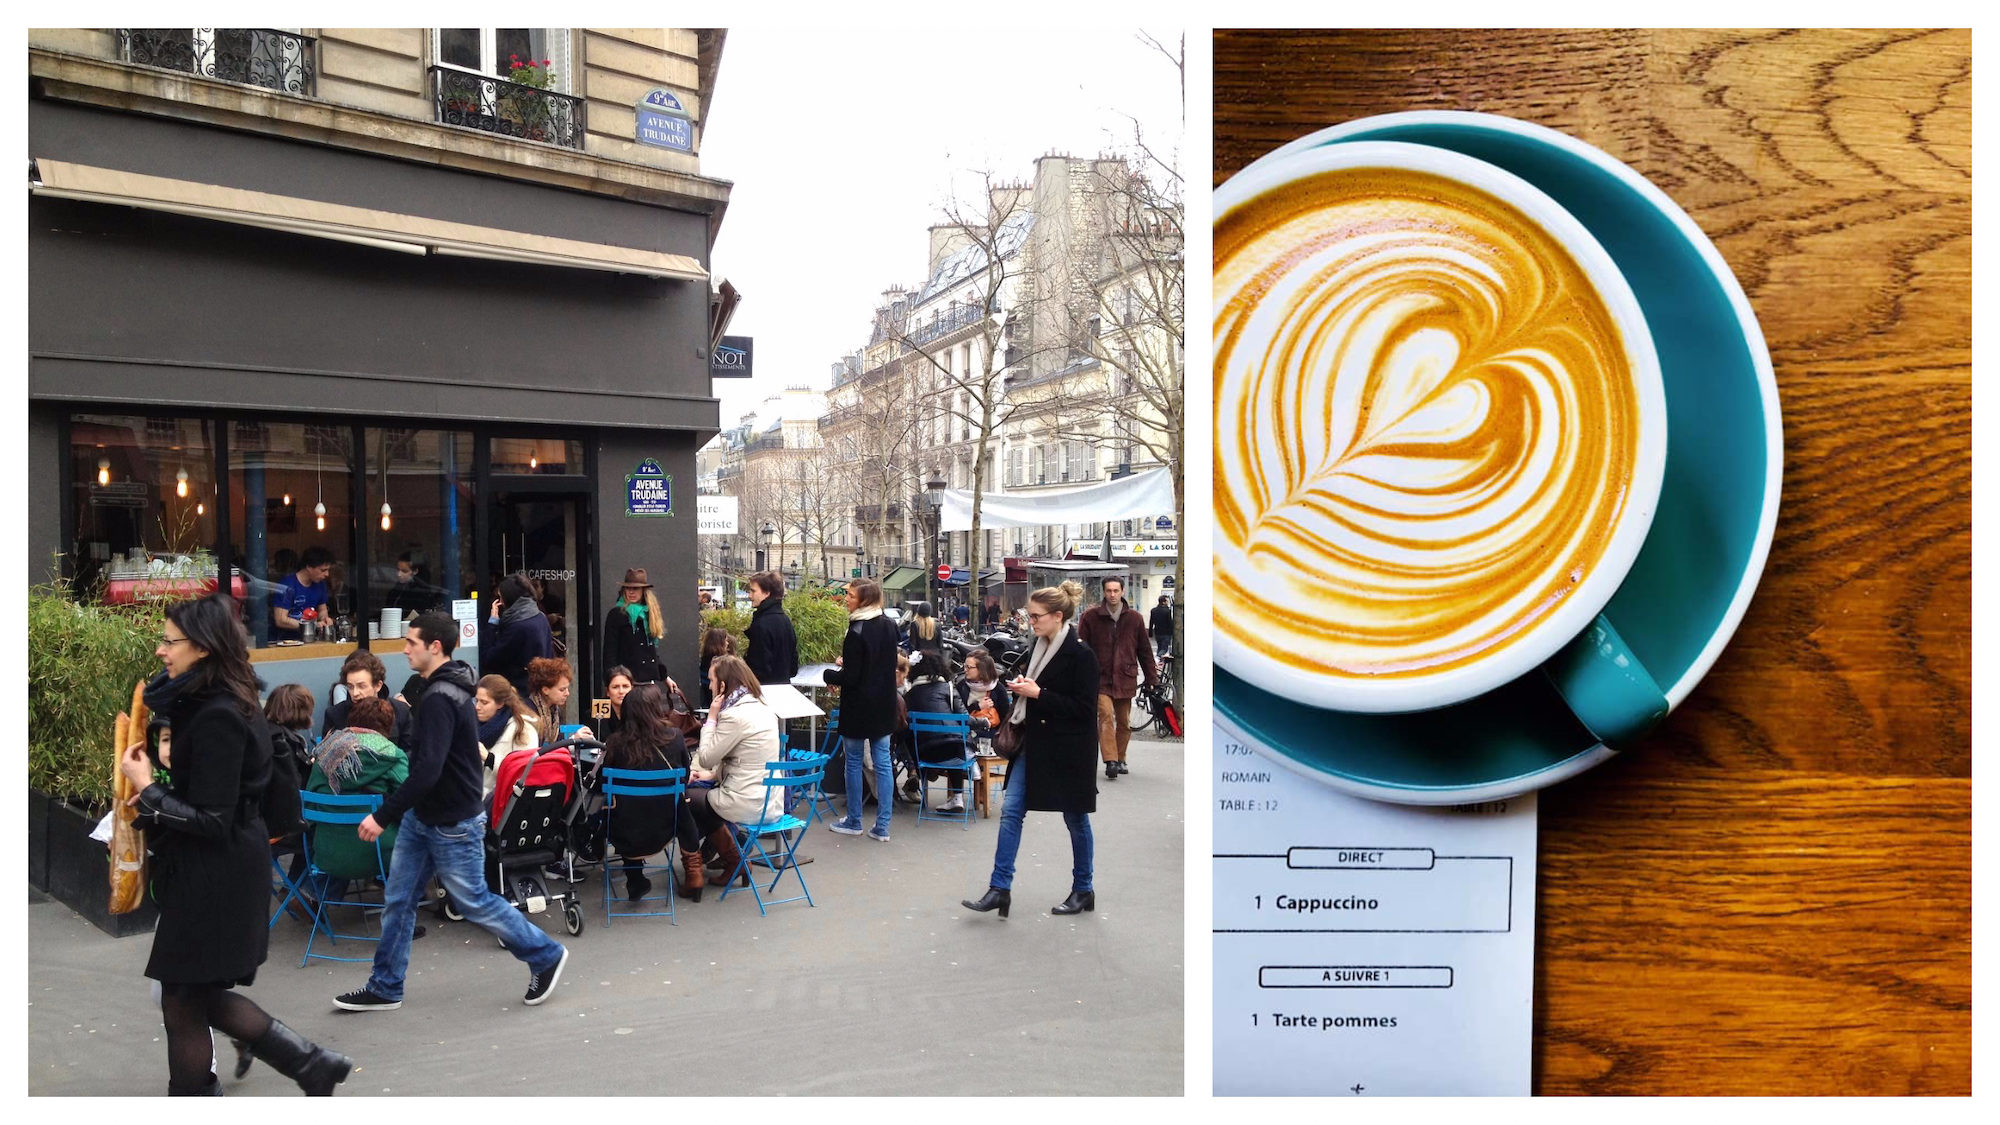 The terrace (left) and latté with creamy swirls in a blue cup on a wooden table (right) at KB Coffee Shop in Paris.